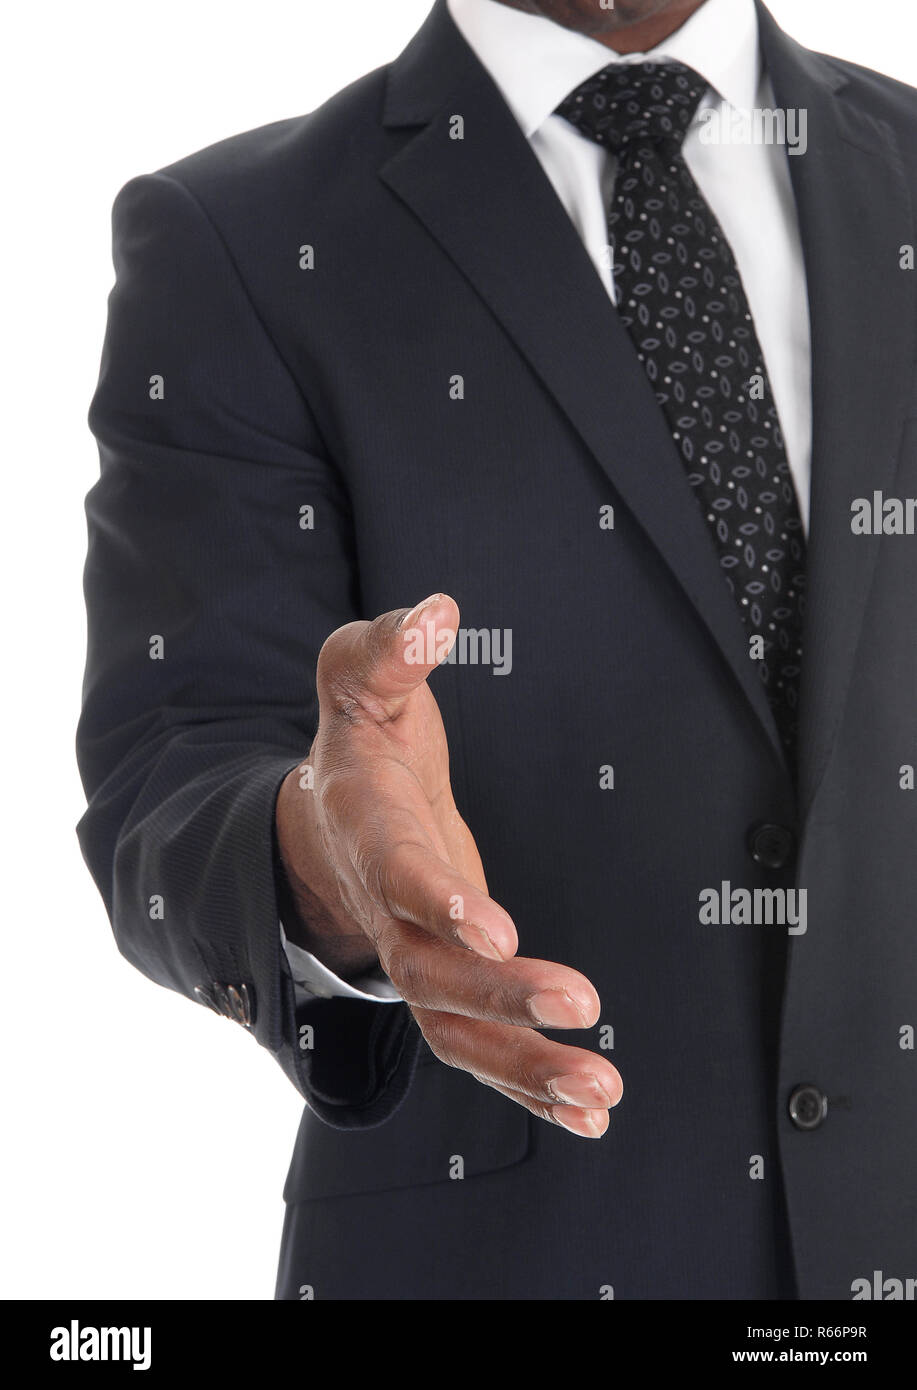 Outstretched hand from a business man Stock Photo